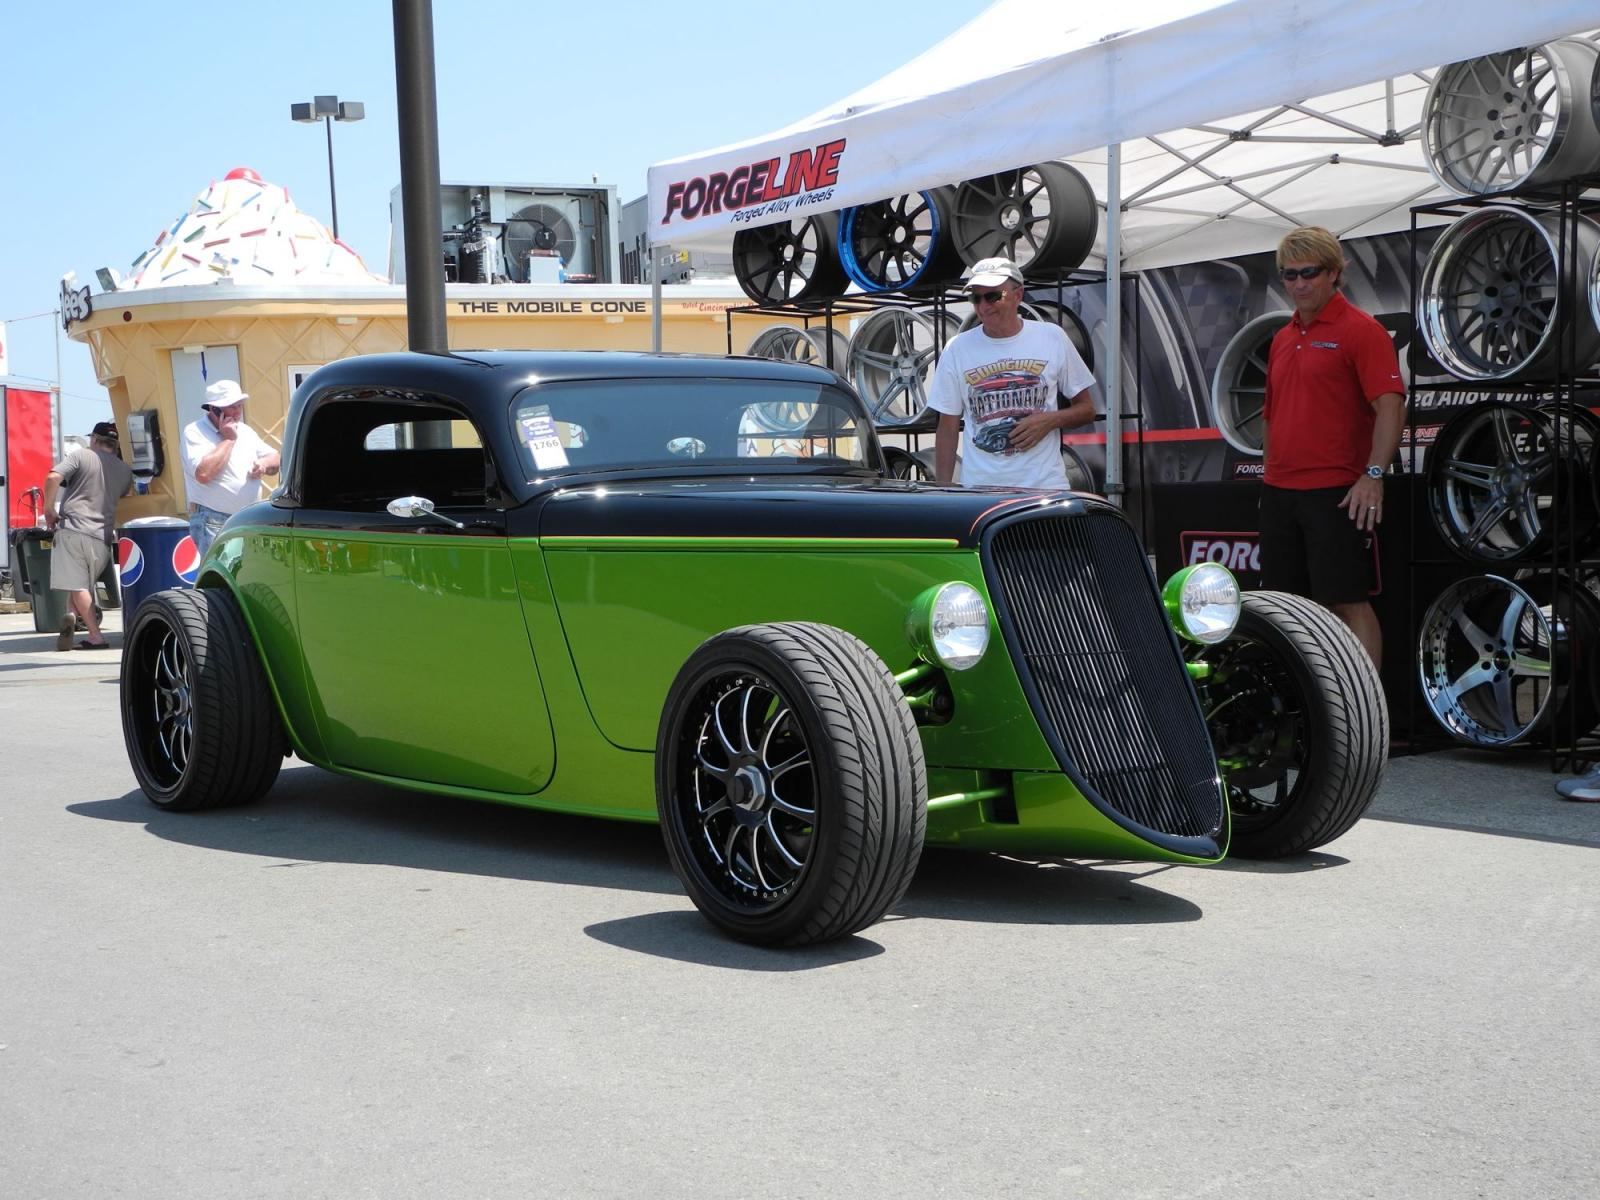 Ford Columbus Ga >> Merle Eschman's '33 Ford Won Builder of the Year on Forgeline ZX3P Center Lock Wheels